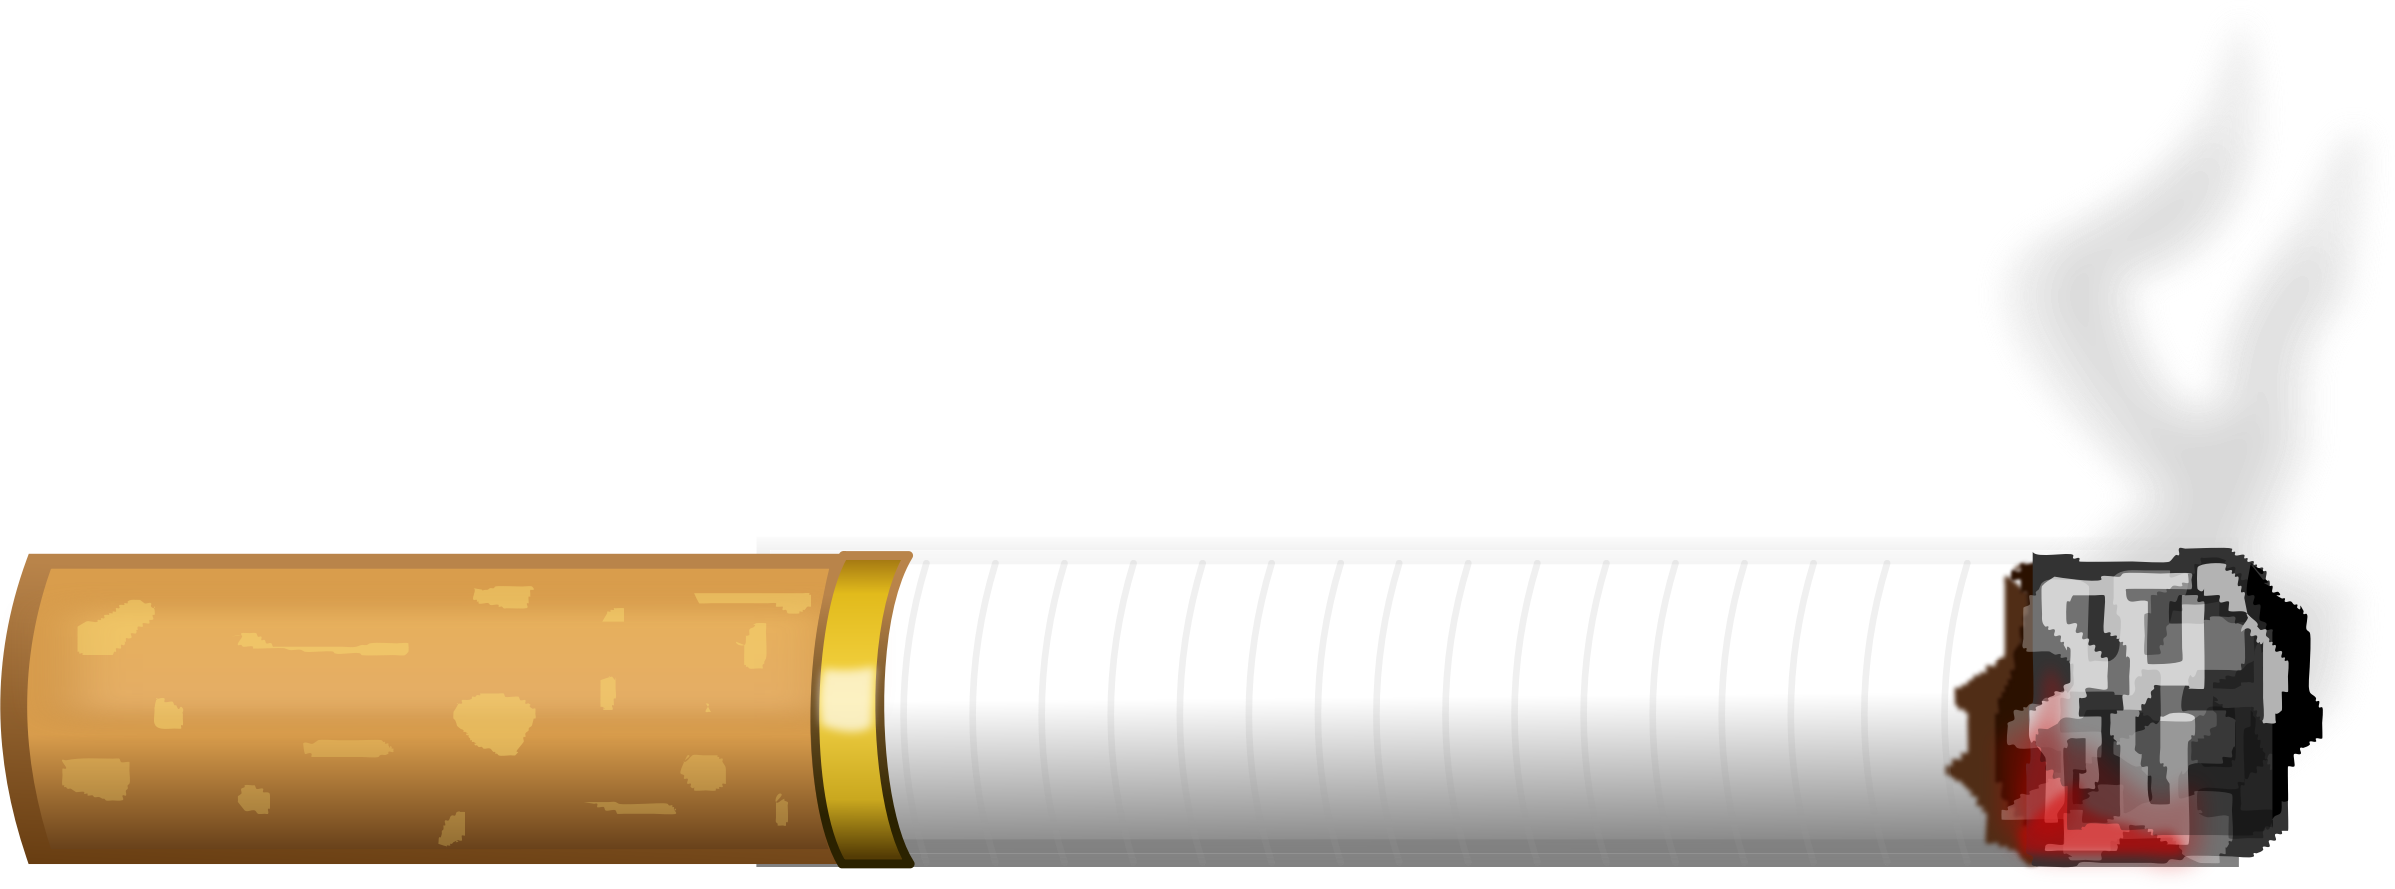 Cigarettes PNG, Cigarettes Transparent Background ...